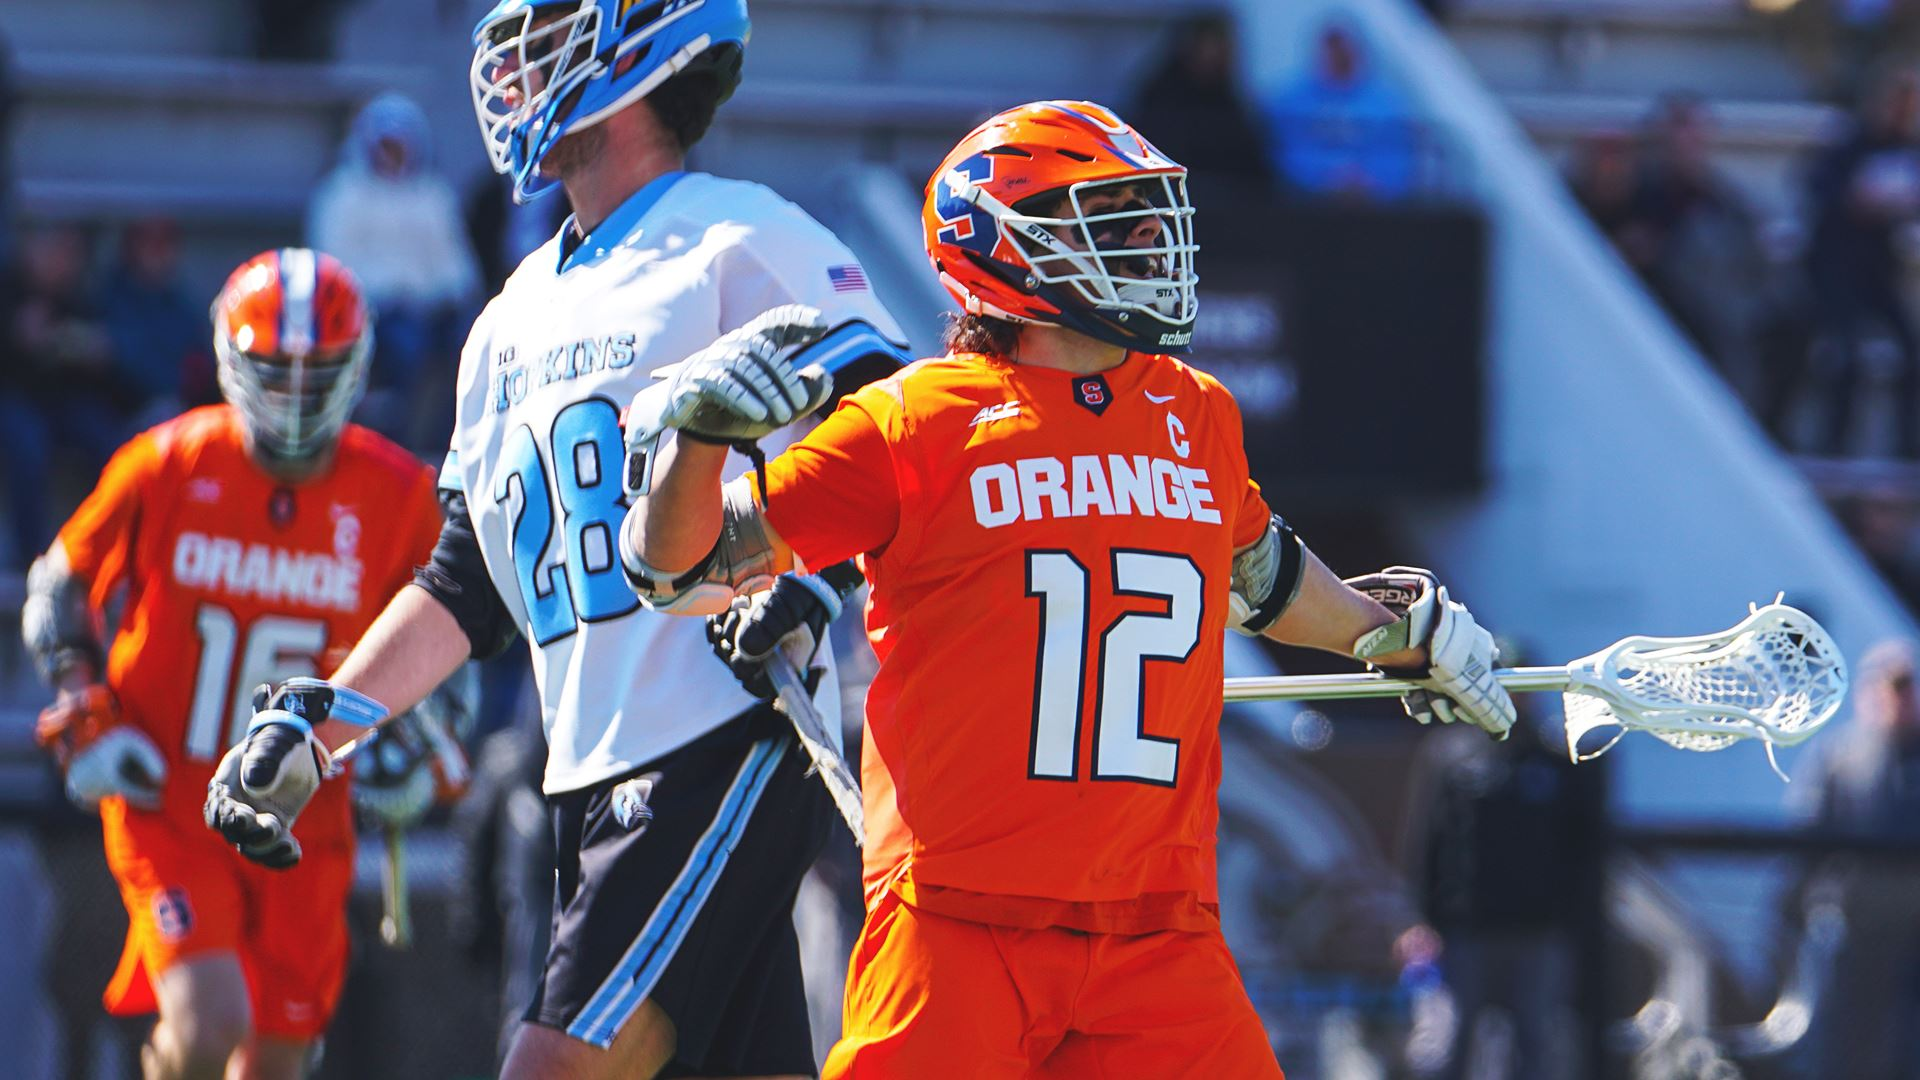 Syracuse Men's Lacrosse crushes Hopkins to stay perfect (full coverage)